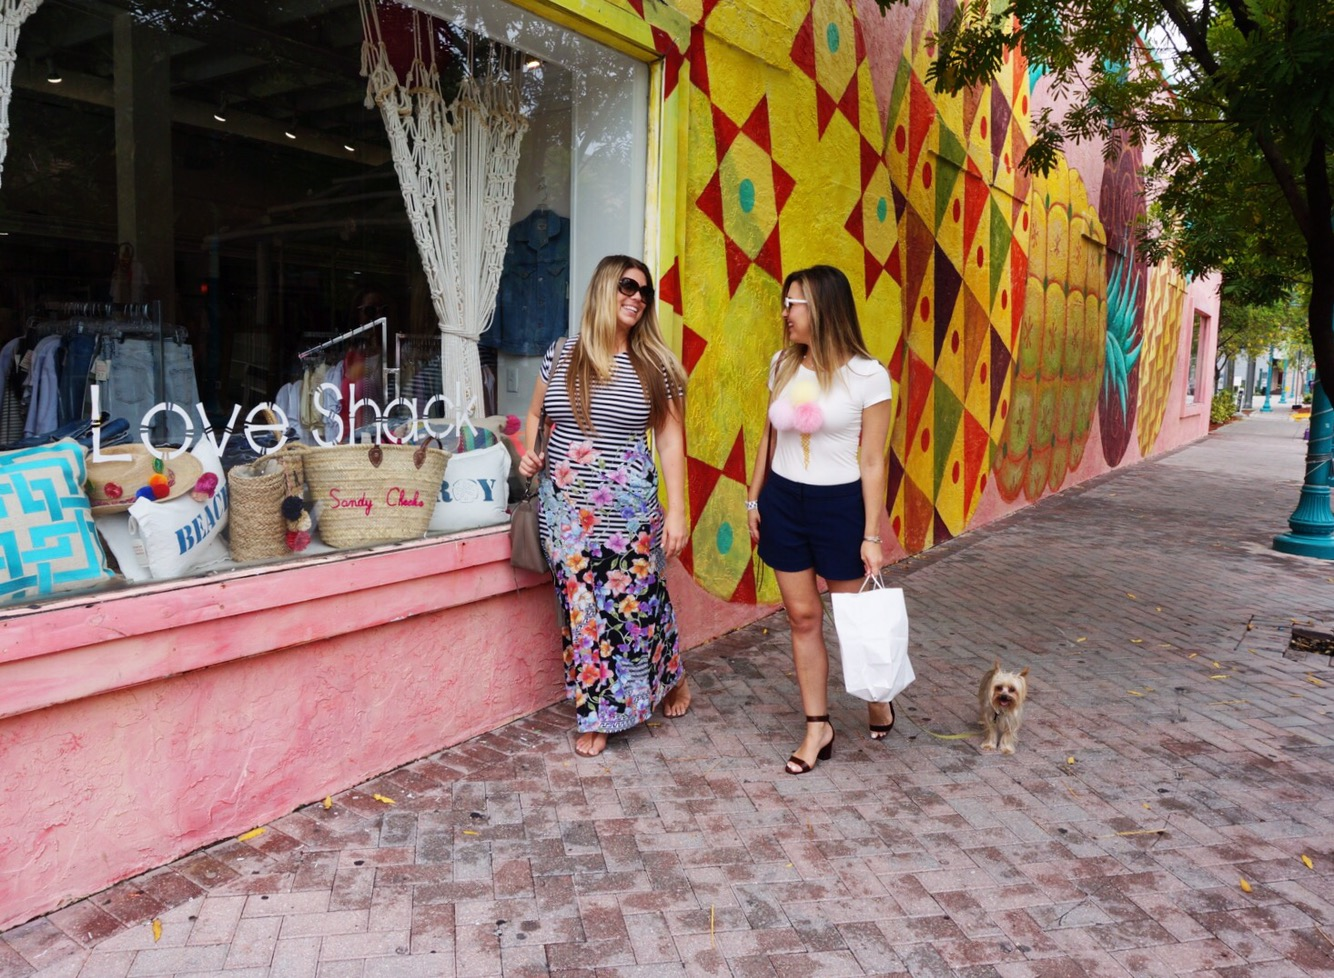 Staycation: Delray Beach, Florida